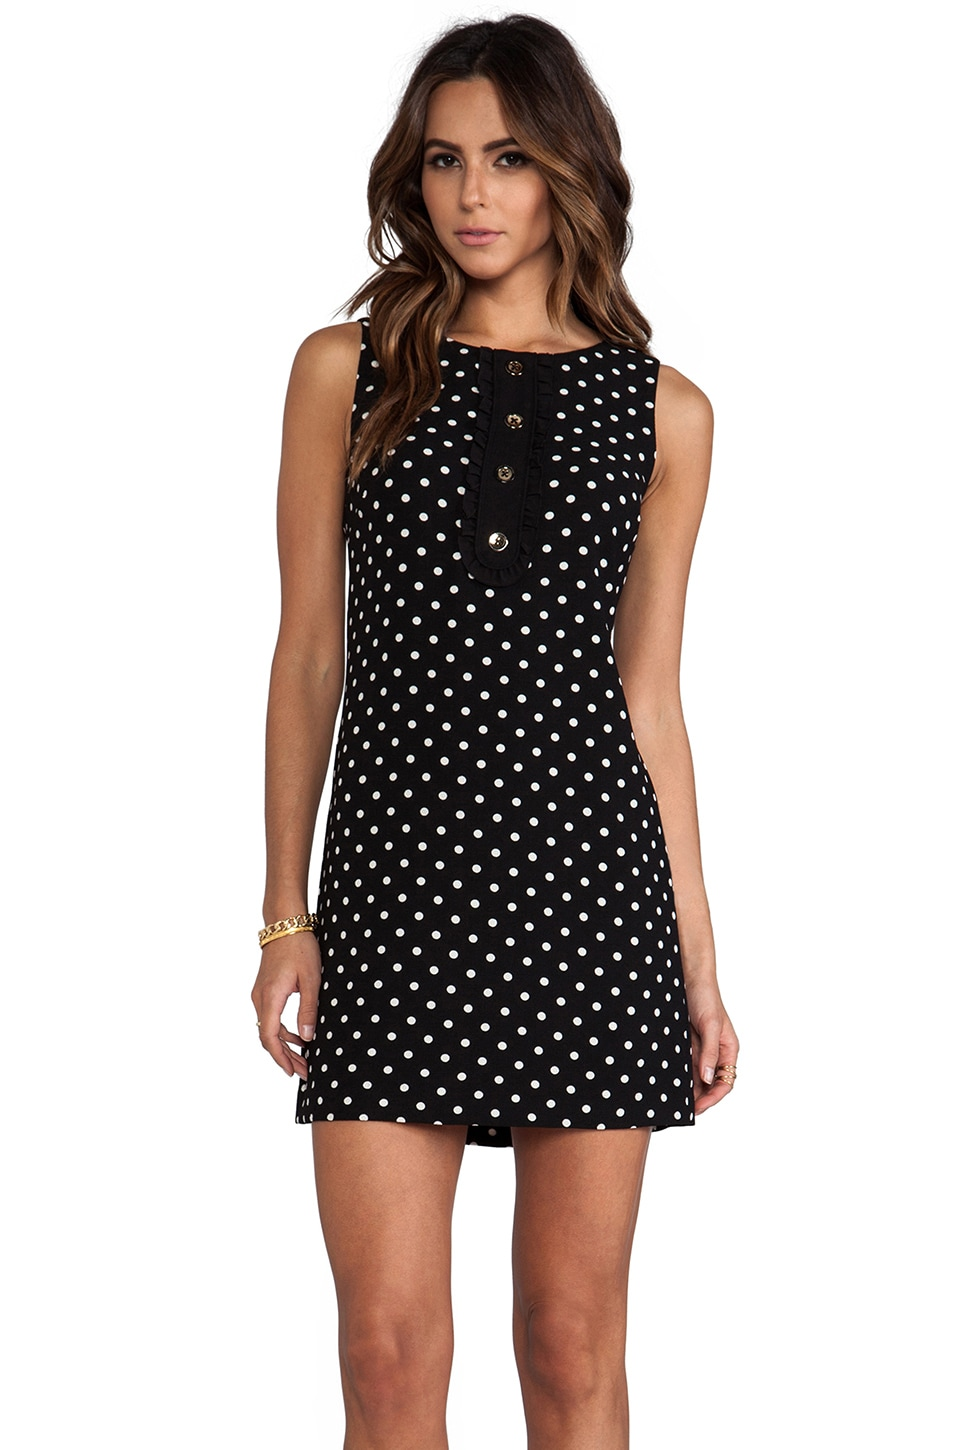 Juicy Couture Shoreham Dot Dress in Black & Angel